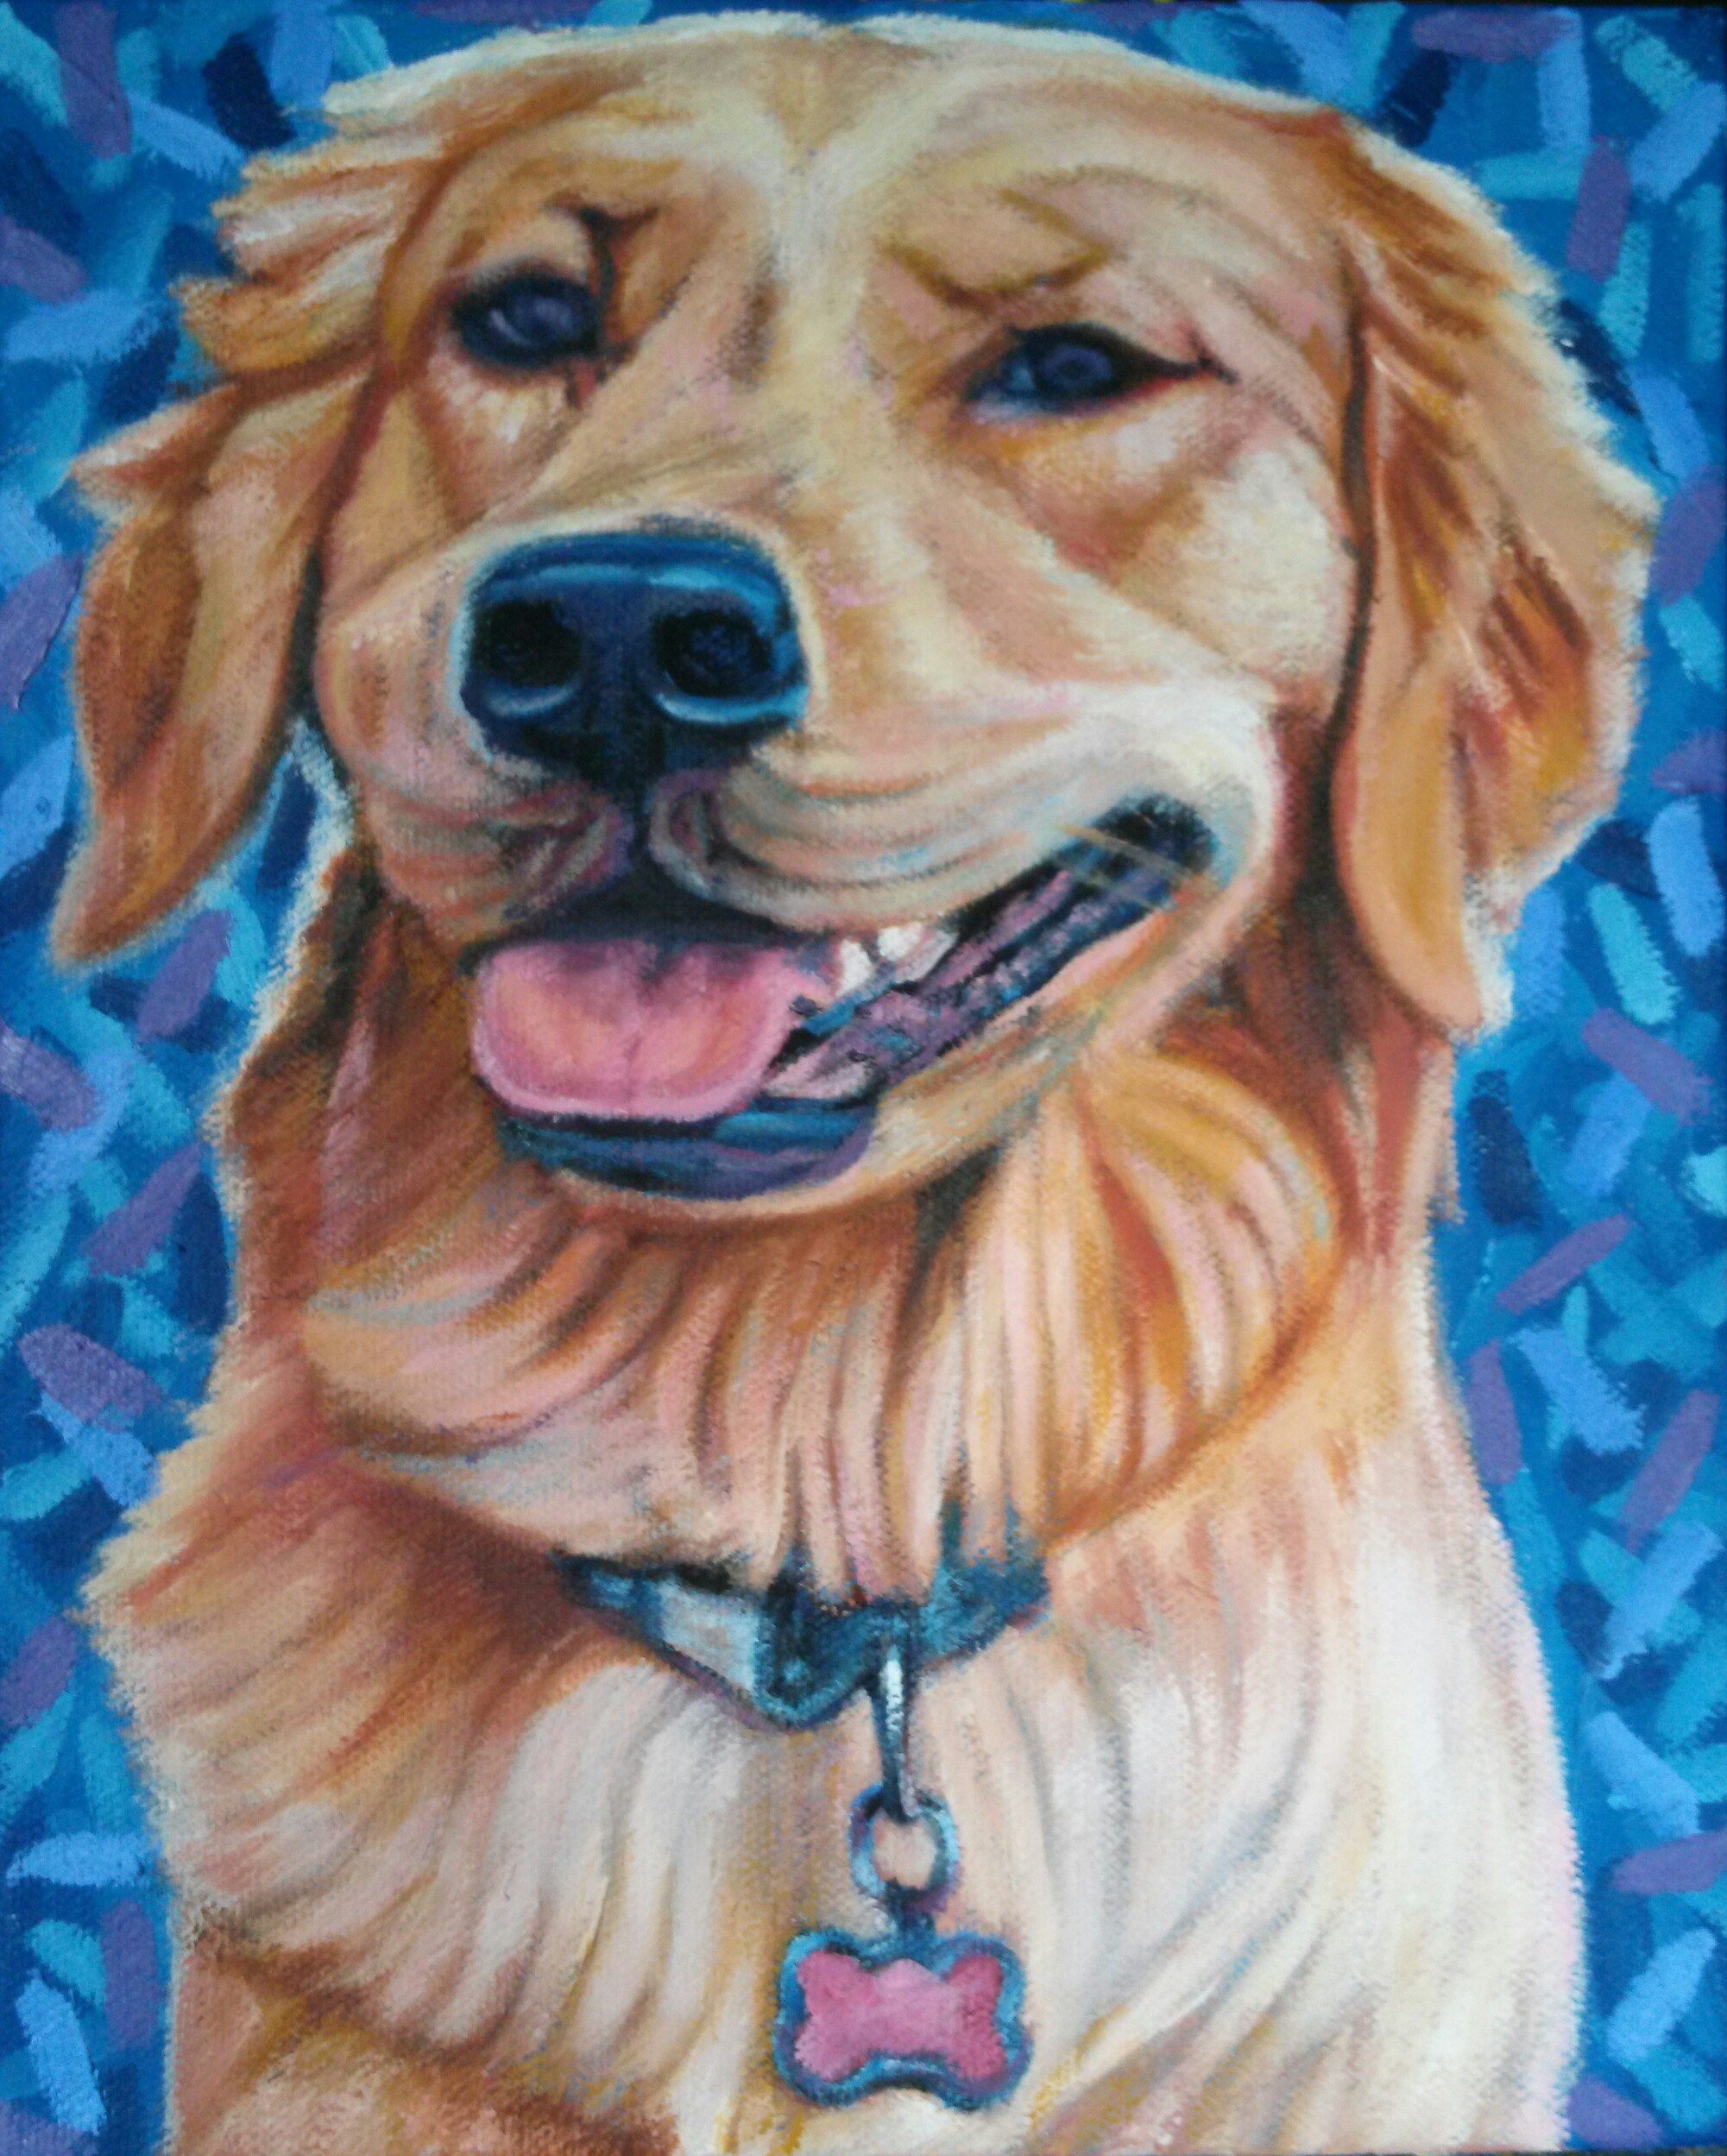 Madone, the Golden Retriever